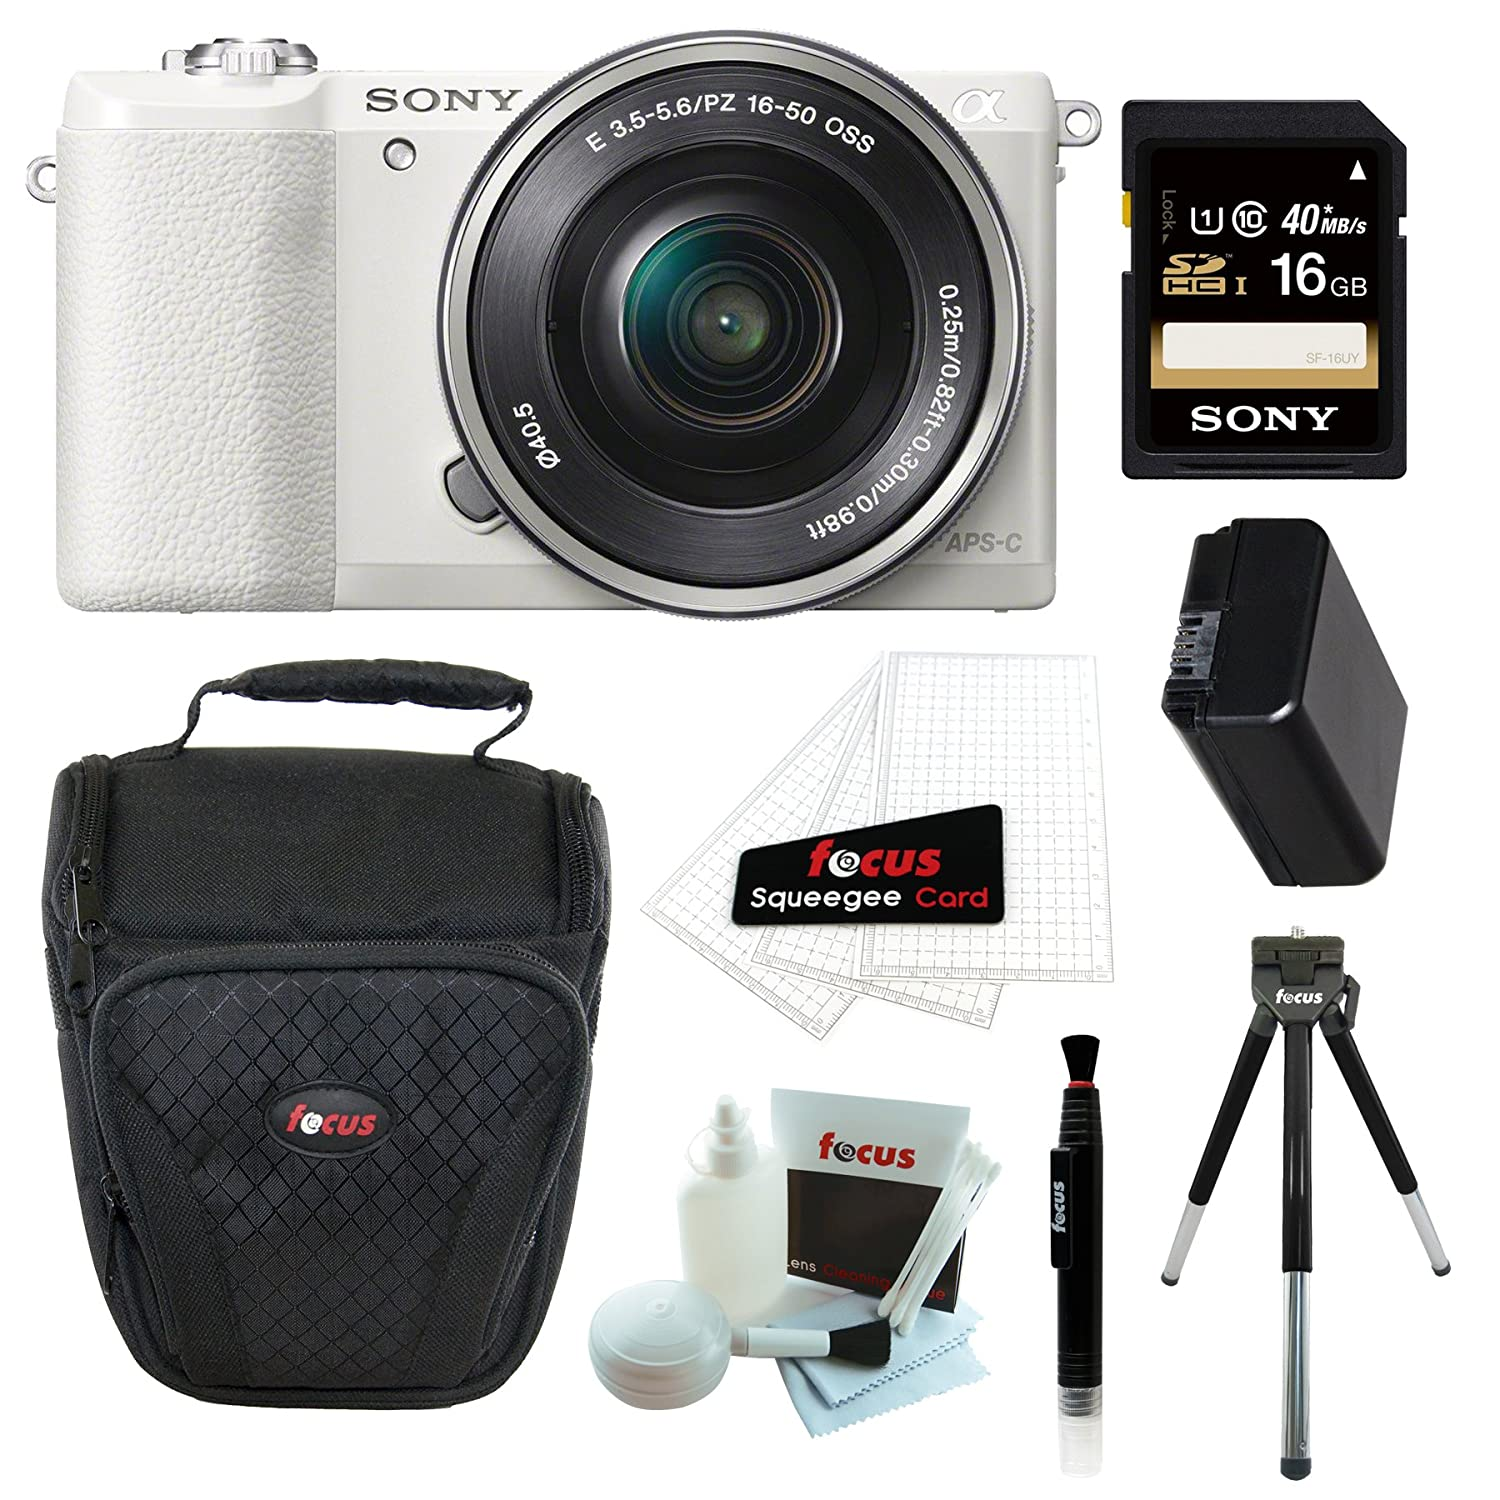 Sony Alpha a5100 ILCE5100 ILCE5100L/W with 16-50mm Lens 24MP Mirrorless Interchangeable Lens Digital Camera (White) + Sony 16GB Class 10 Memory Card + Additional NP-FW50 Battery + Accessory Bundle